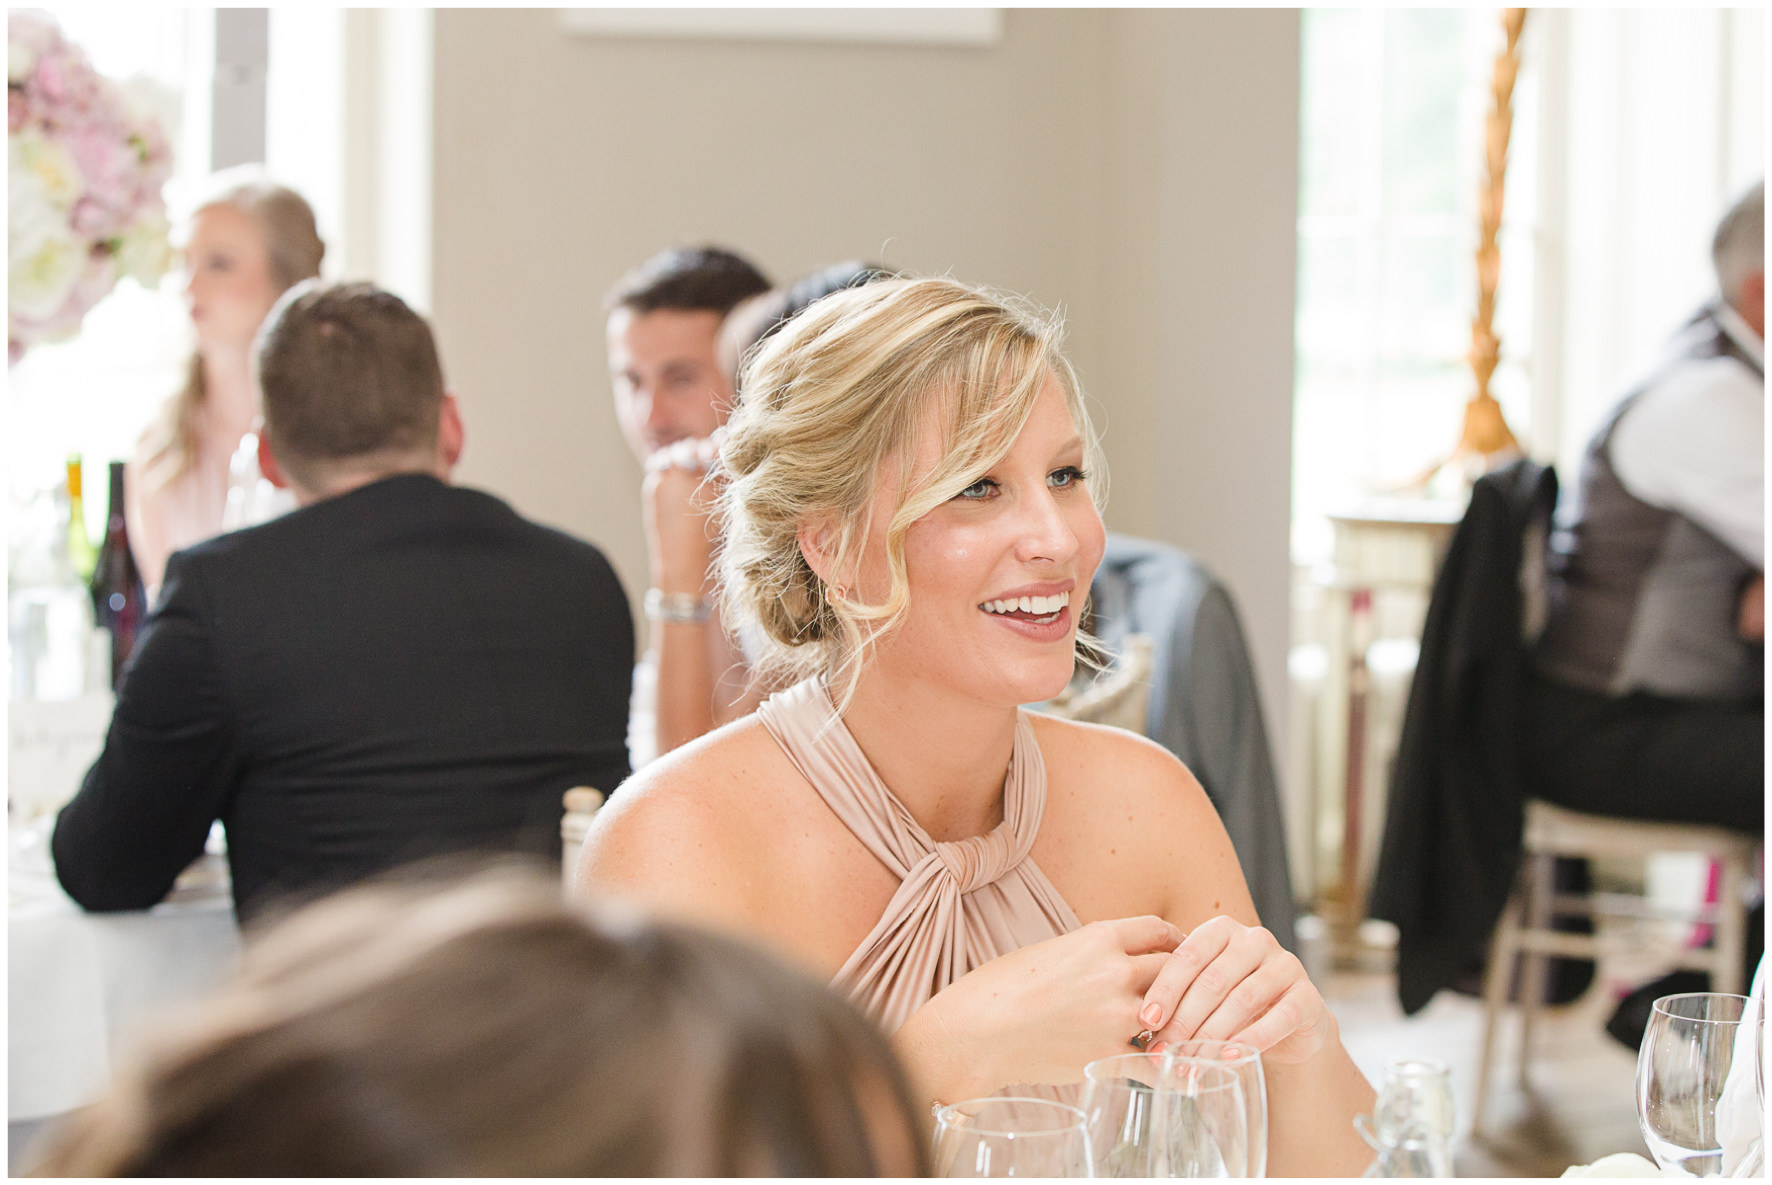 Lucy Davenport Photography, Aynhoe Park, Oxfordshire, wedding venue, Rock My Wedding, speeches, bridesmaid